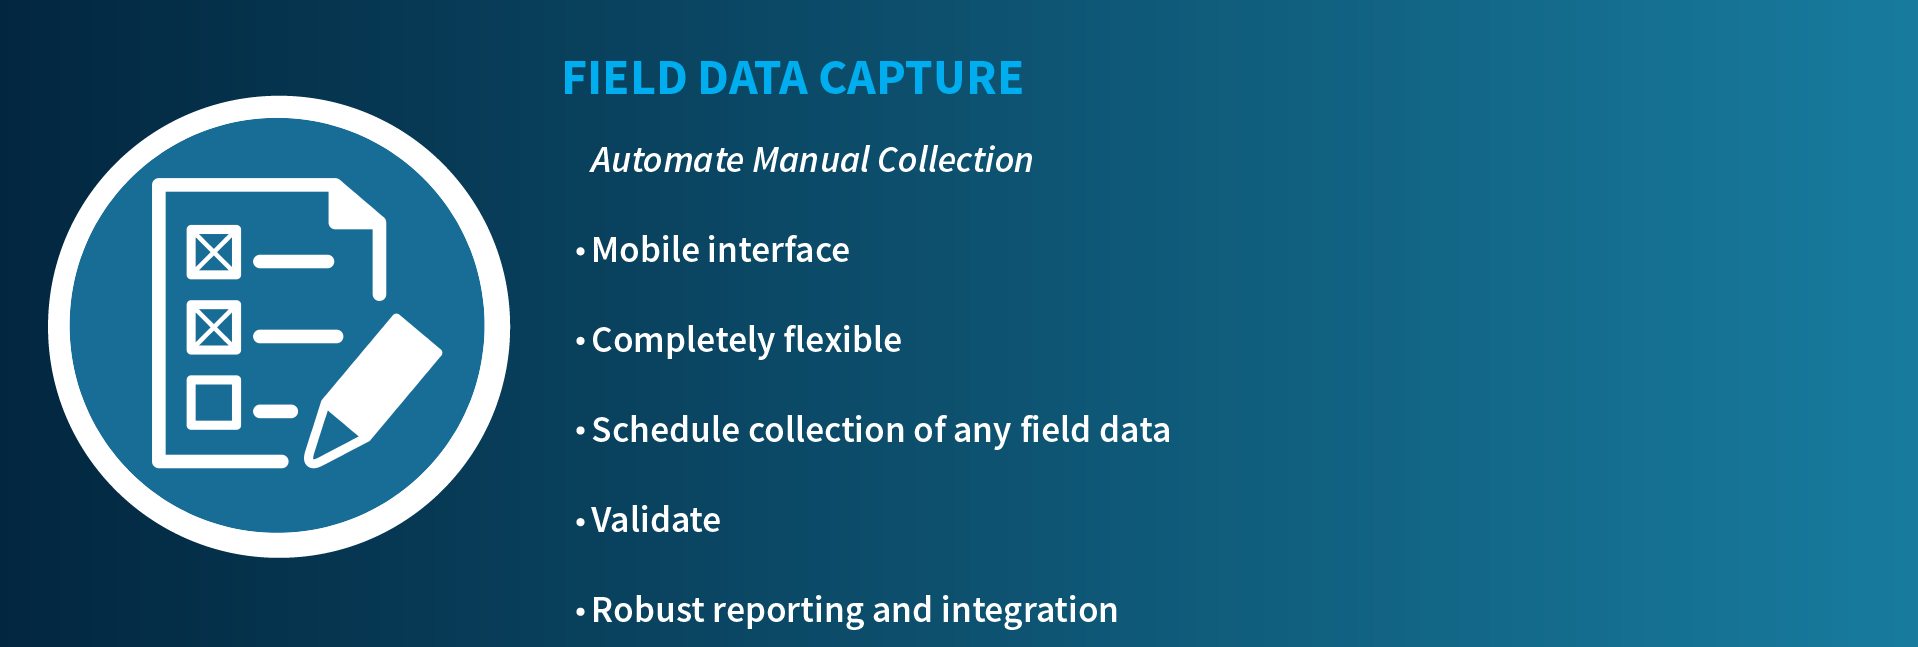 Field Data Capture 1-01.png